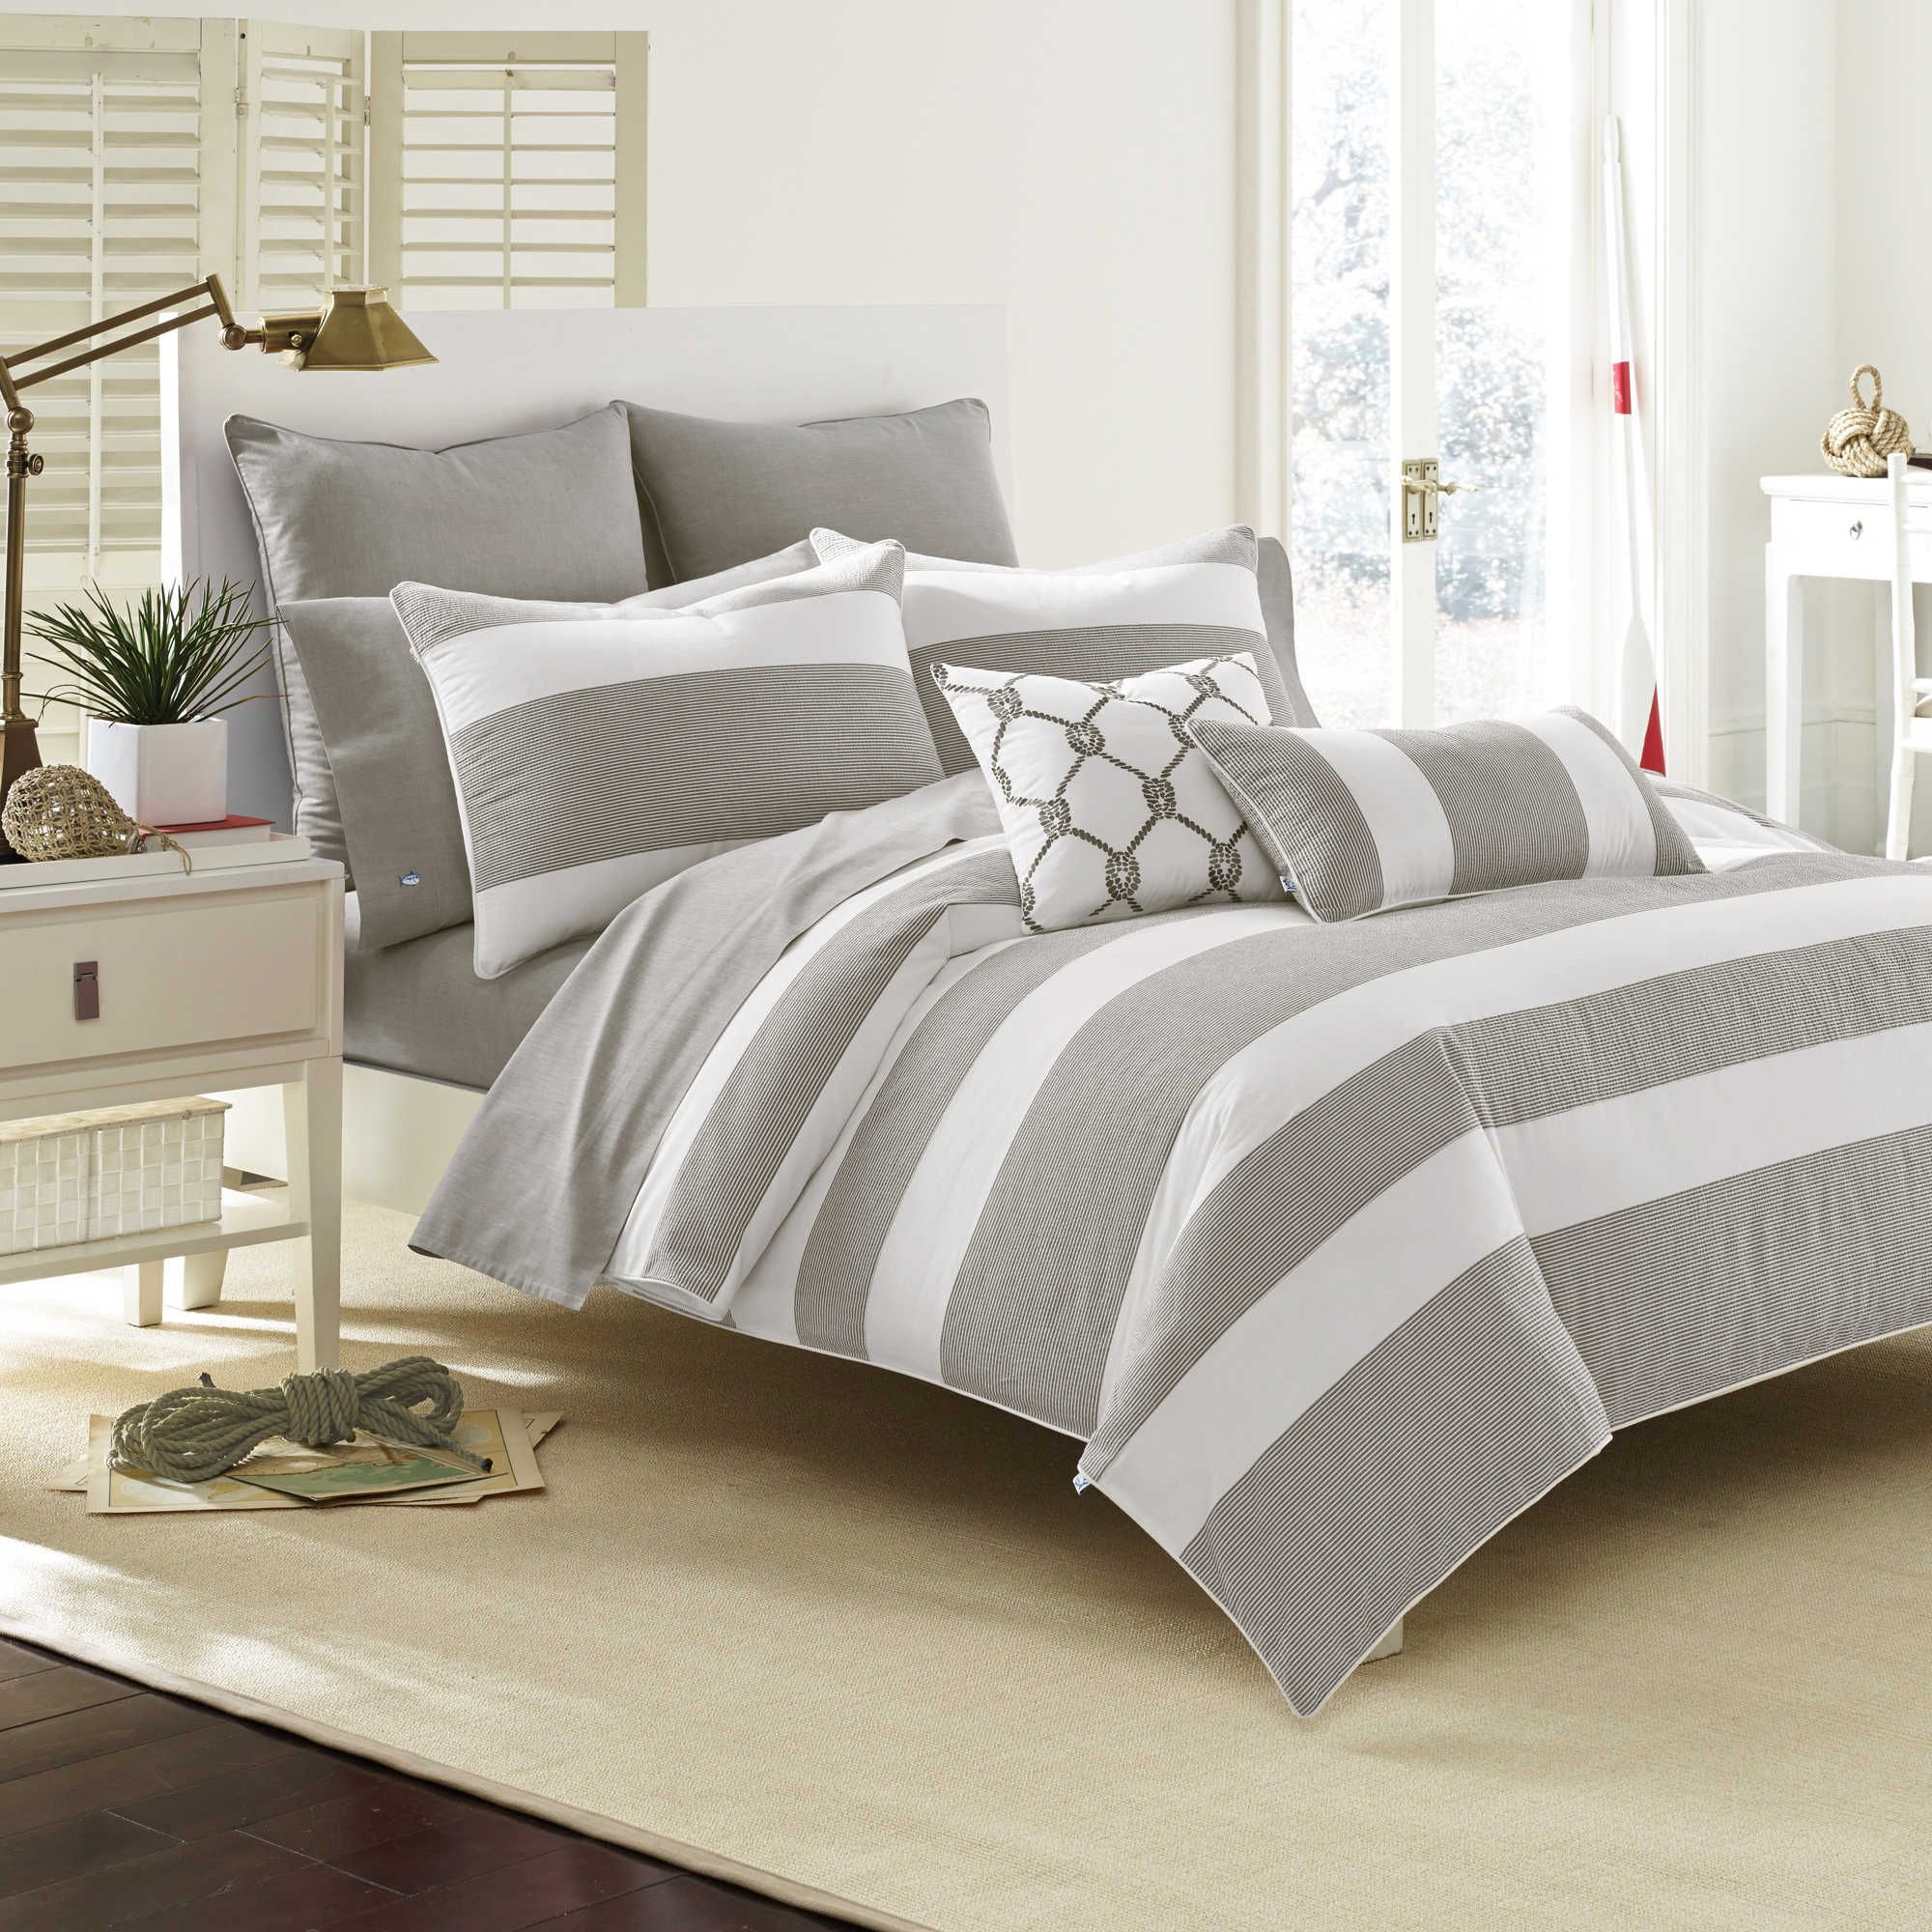 piece set brown park overstock less brand bath for cat marilyn madison tide color taupe bedding southern sets comforter